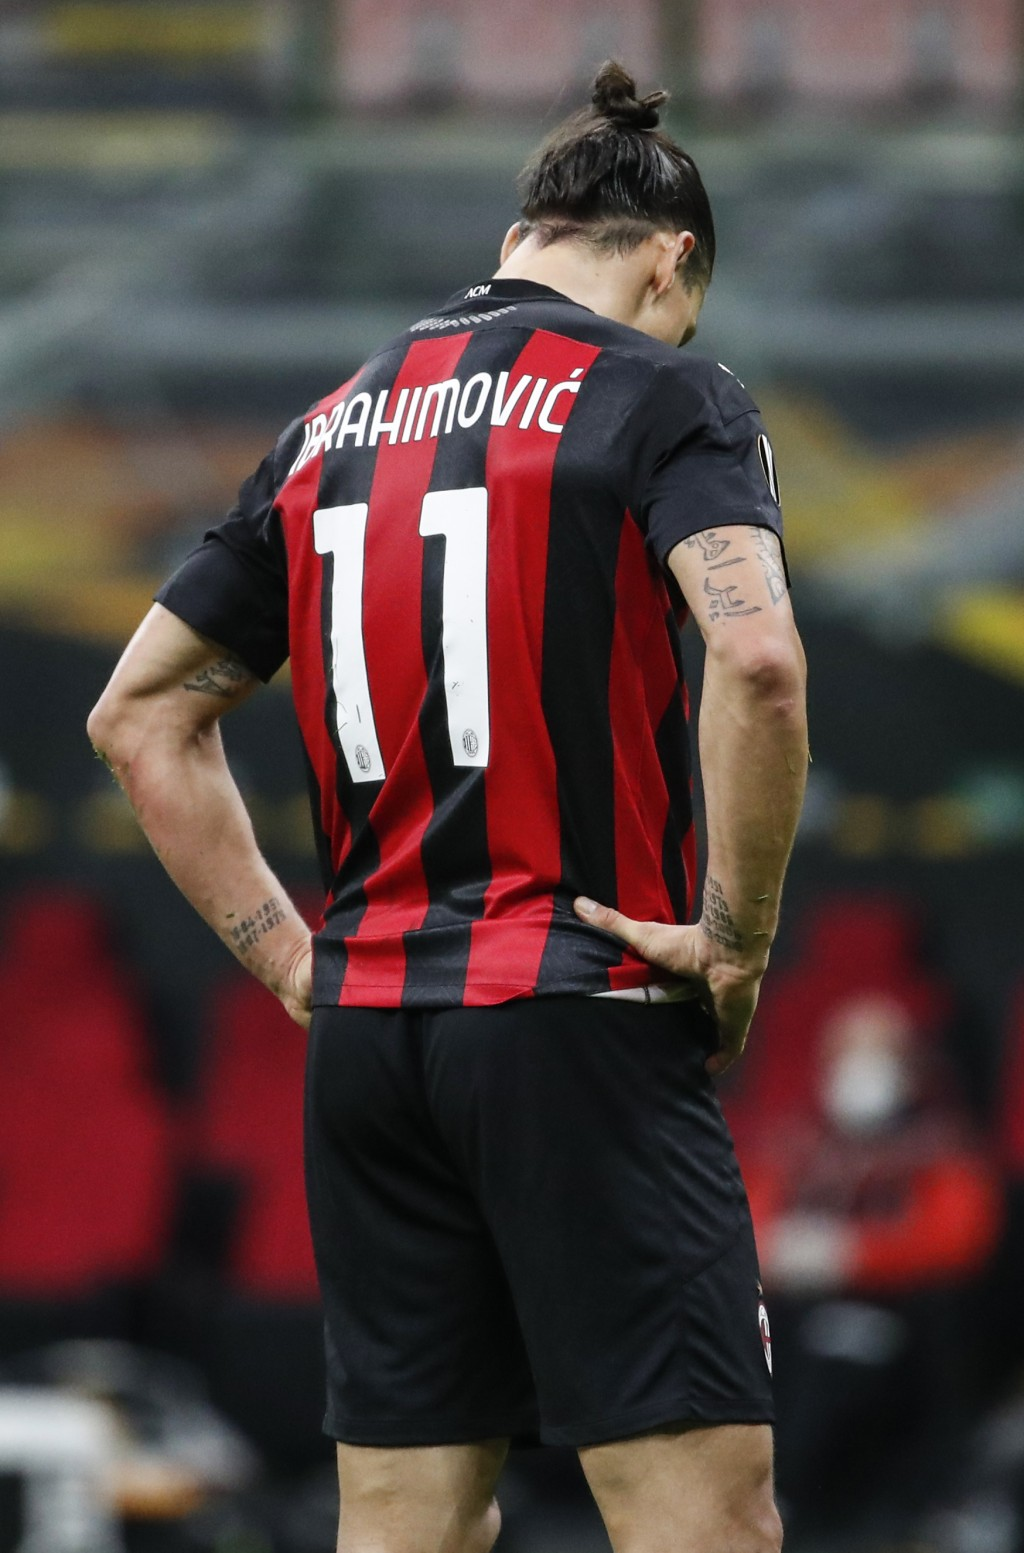 AC Milan's Zlatan Ibrahimovic stands after missing a penalty kick during the Europa League Group H soccer match between AC Milan and Sparta Praha at t...